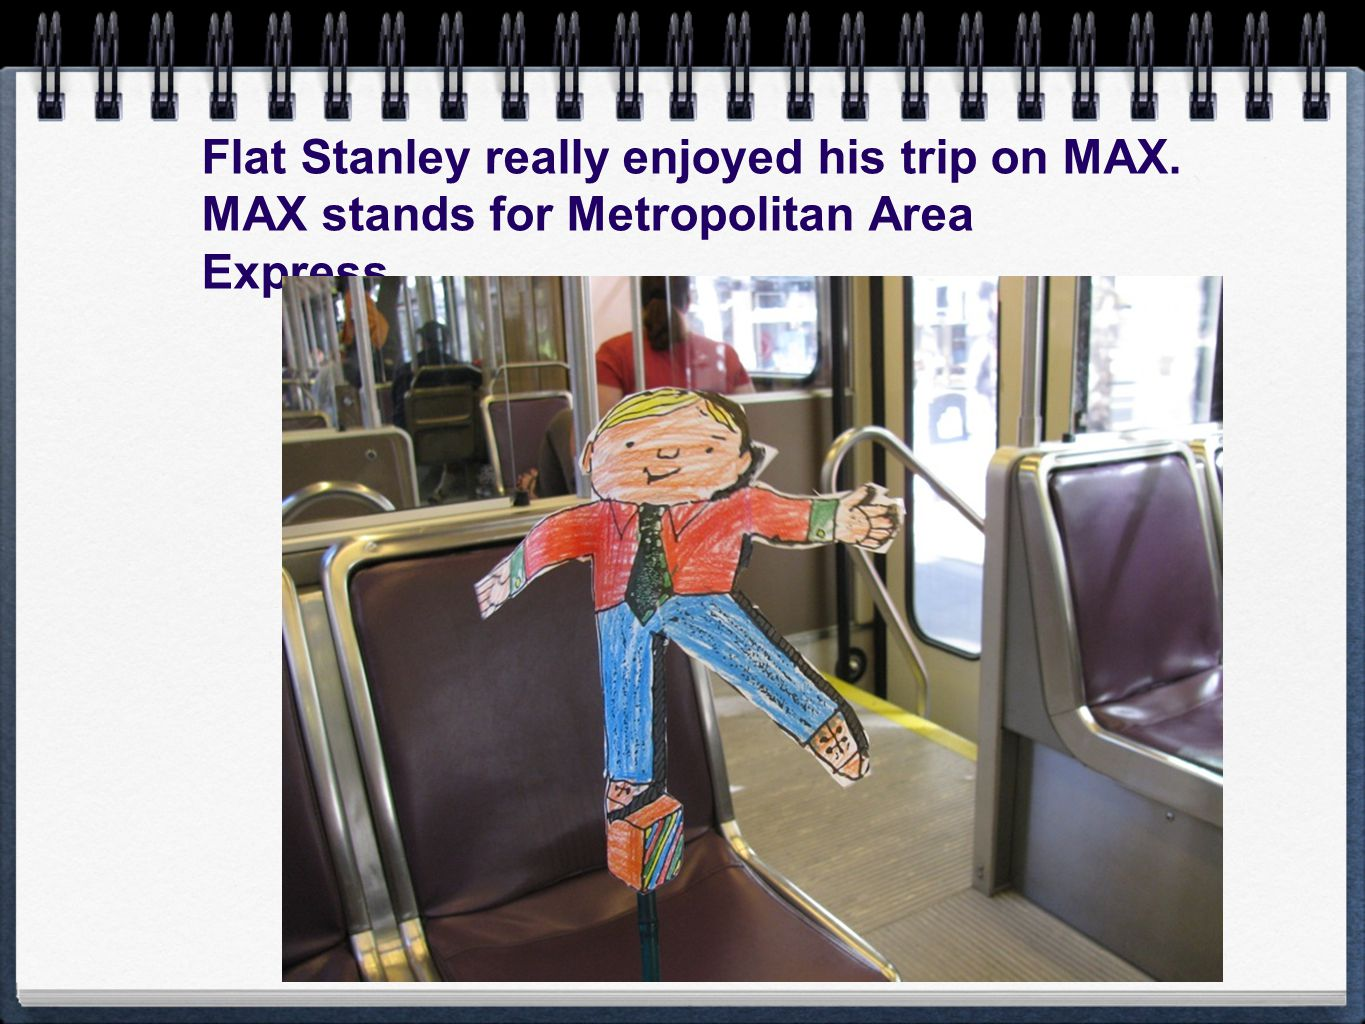 Flat Stanley really enjoyed his trip on MAX. MAX stands for Metropolitan Area Express.